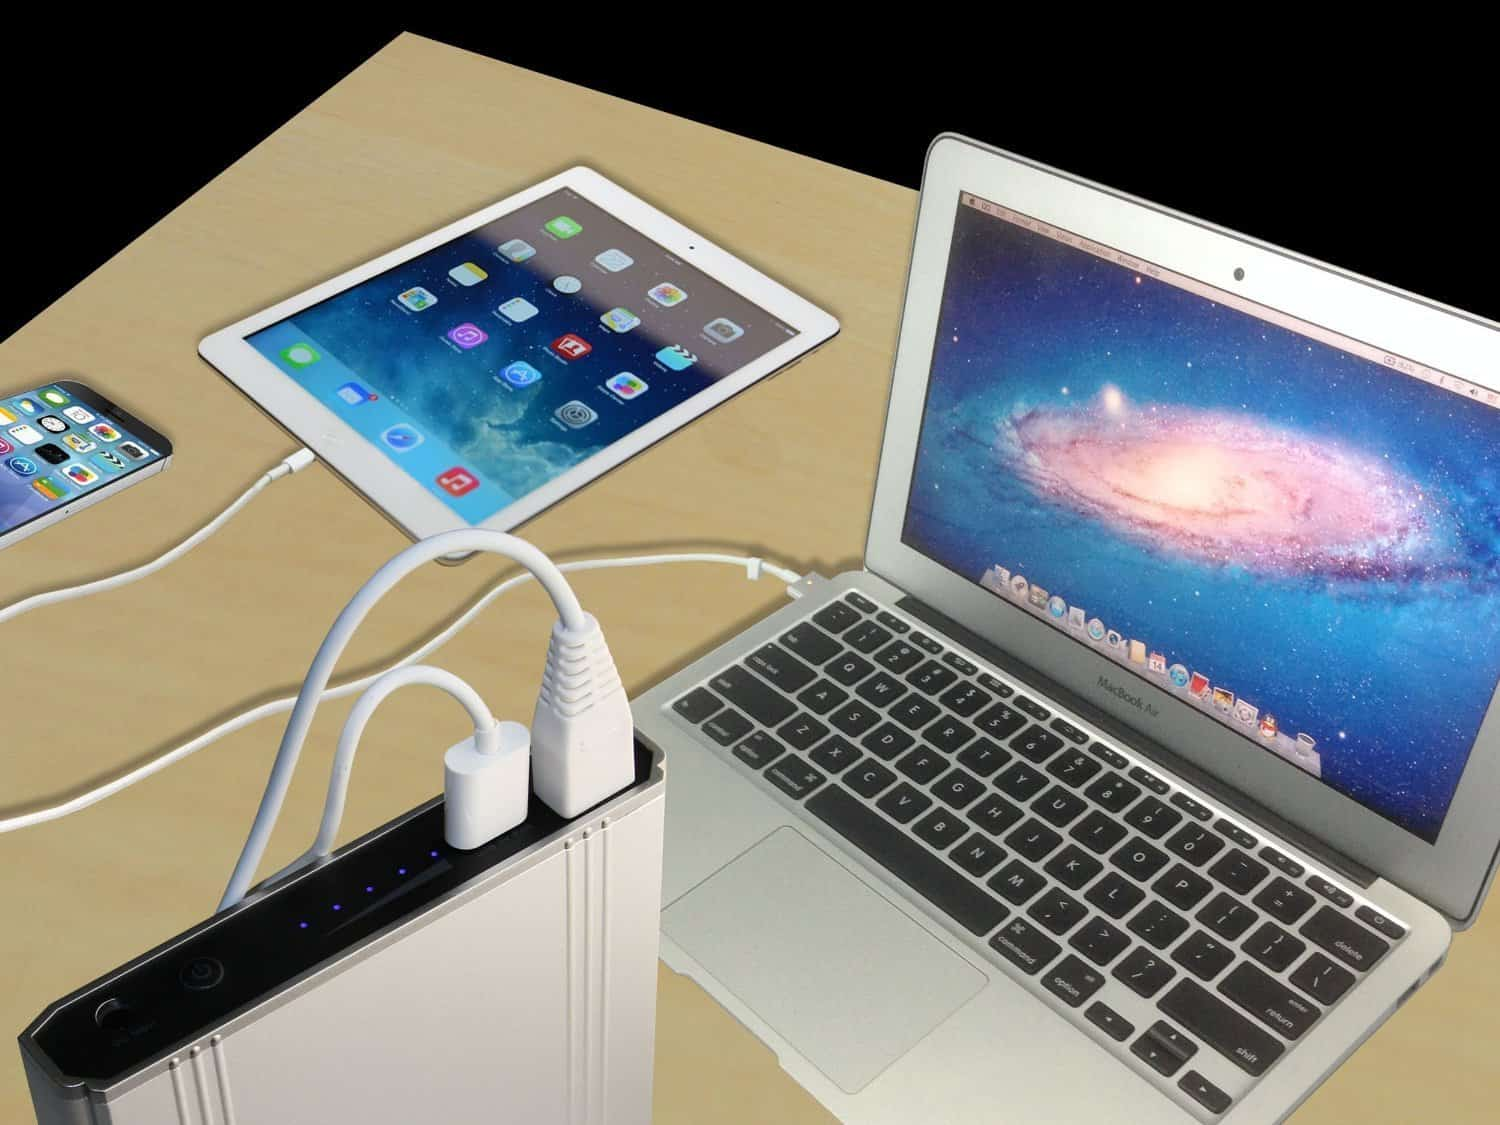 The Lizone Extra Pro Portable Charger Works For Macbooks